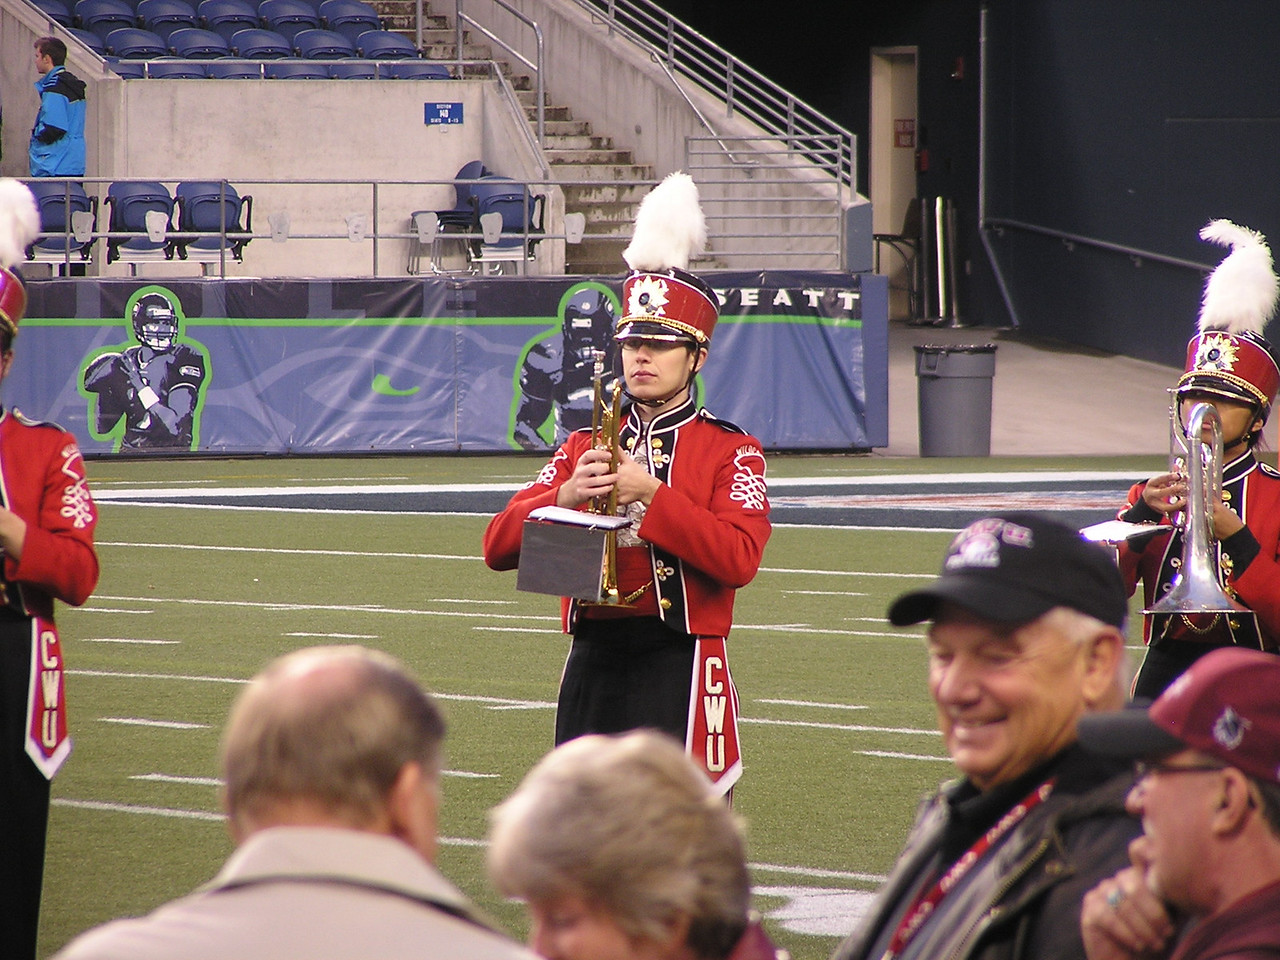 Kevin showing good form for a marching trumpeter.